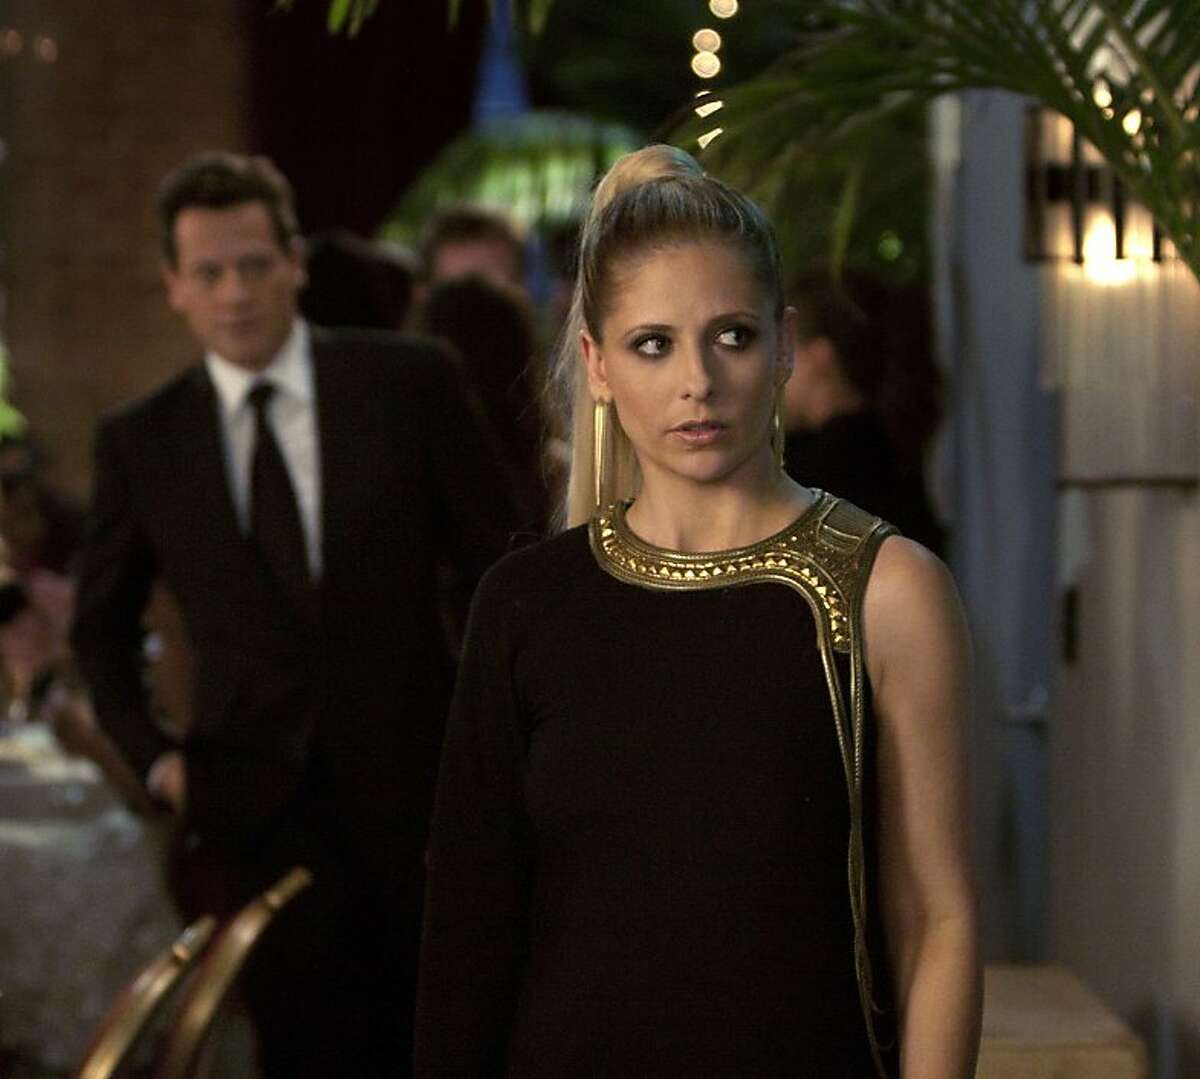 """""""She's RuiningEverything"""" -- Ioan Gruffudd as Andrew Martin and Sarah Michelle Gellar as Bridget Kelly/Siobhan Martin on Ringer on The CW."""